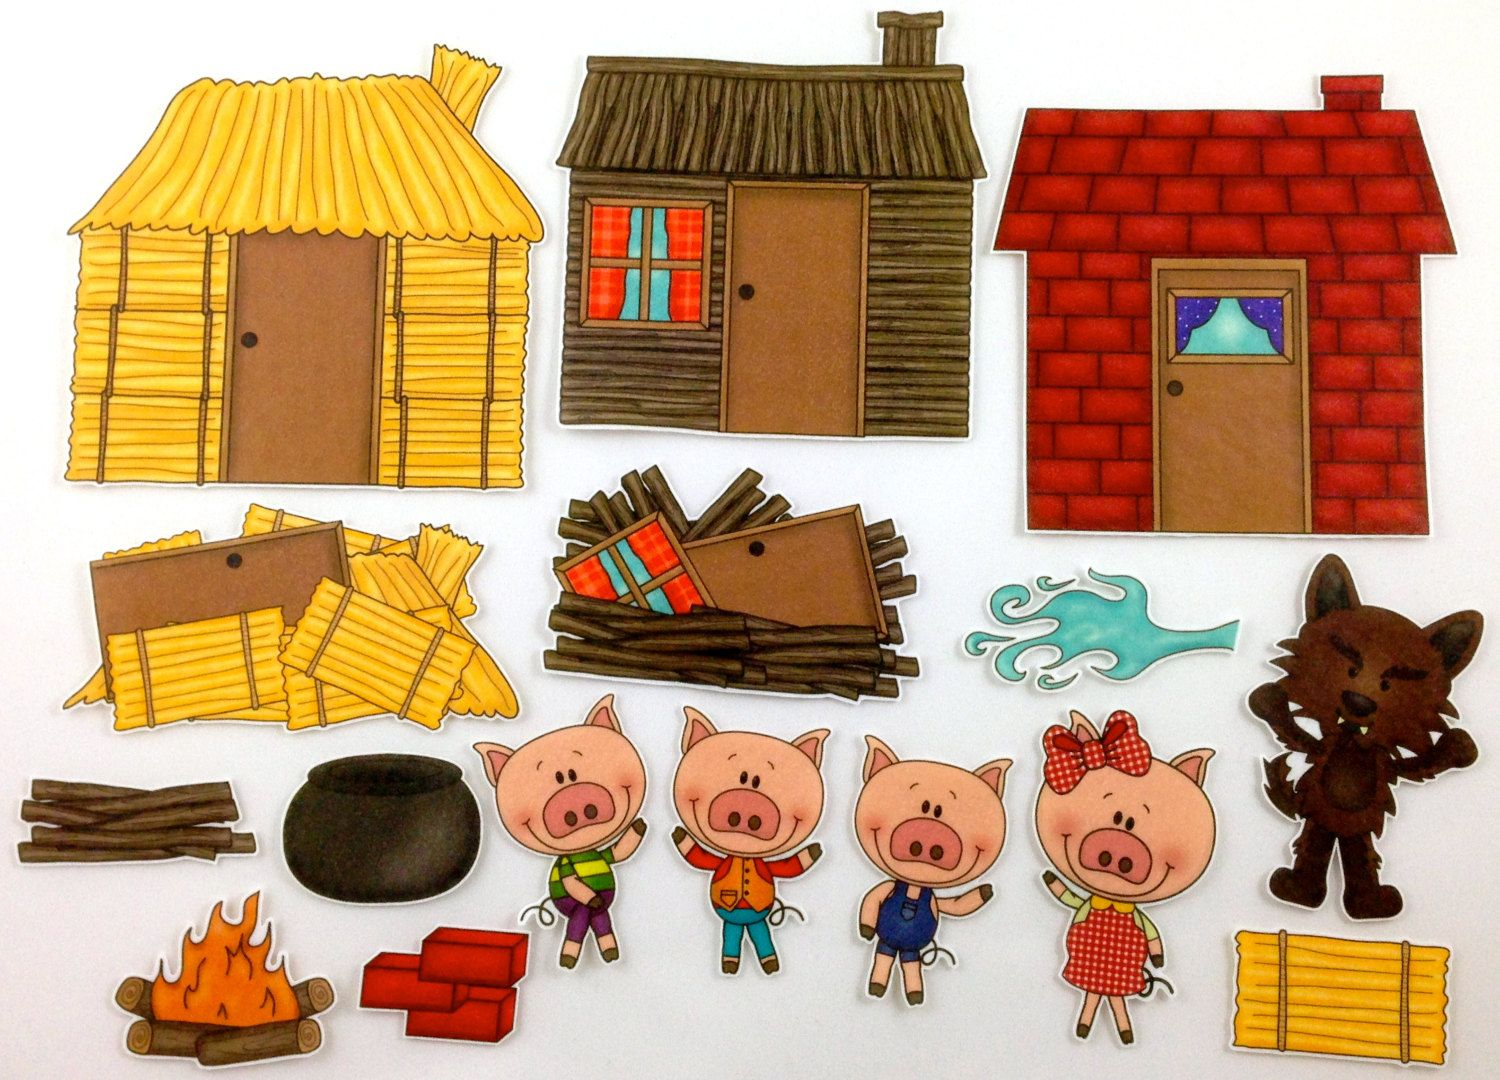 Three little pigs felt board story set by bymaree on etsy for The three little pigs puppet templates